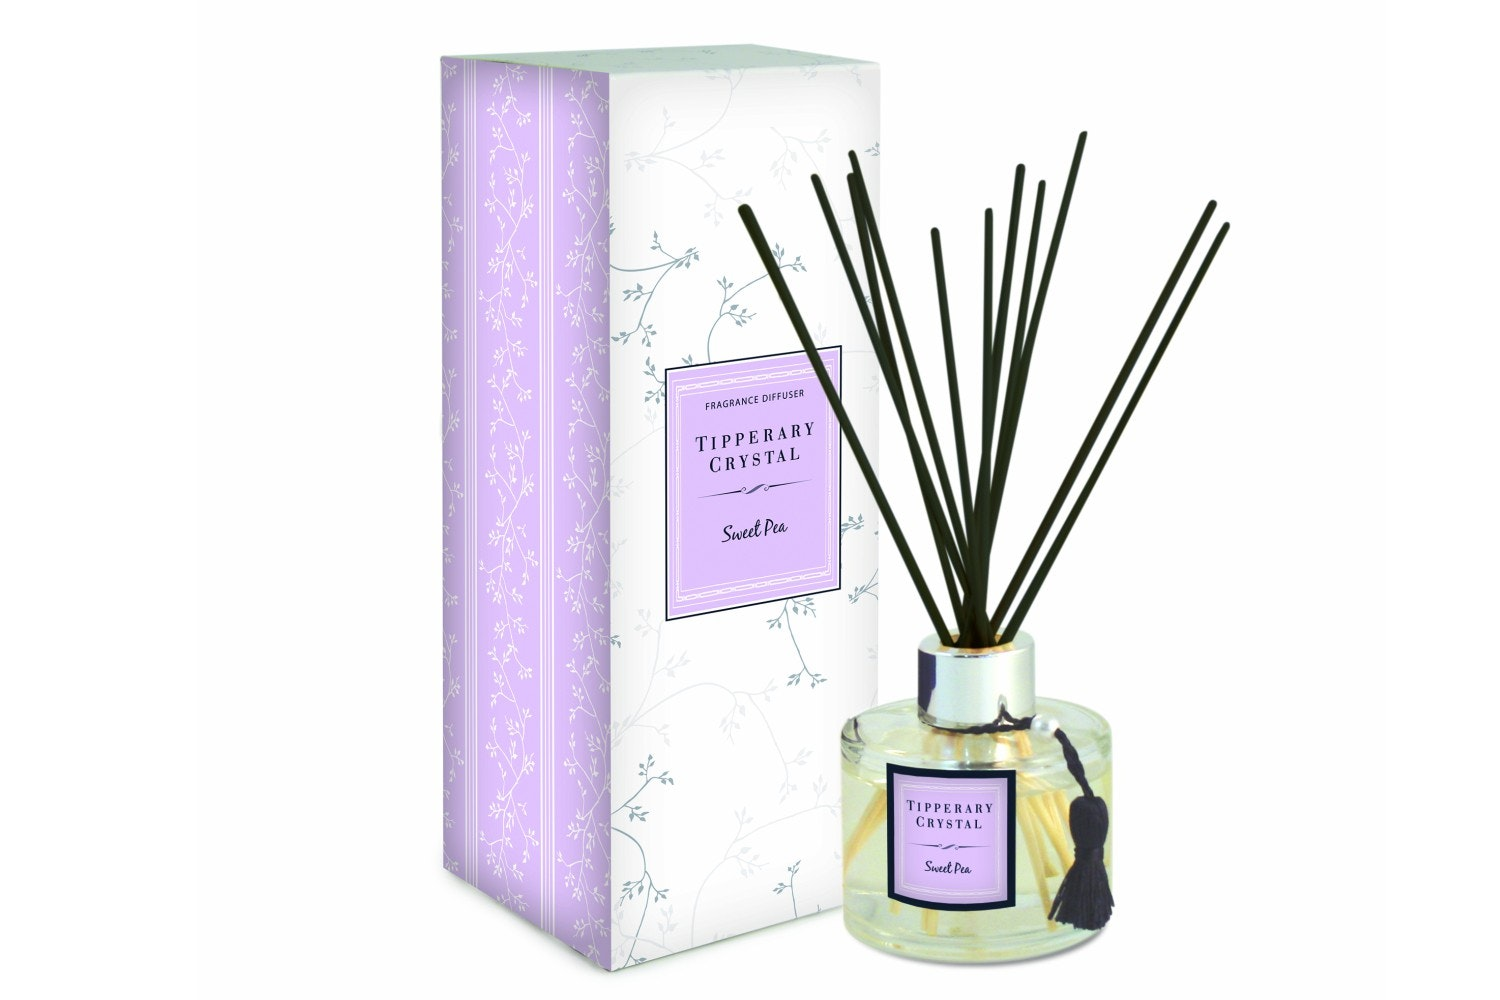 Tipperary Crystal Sweet Pea Fragranced Diffuser